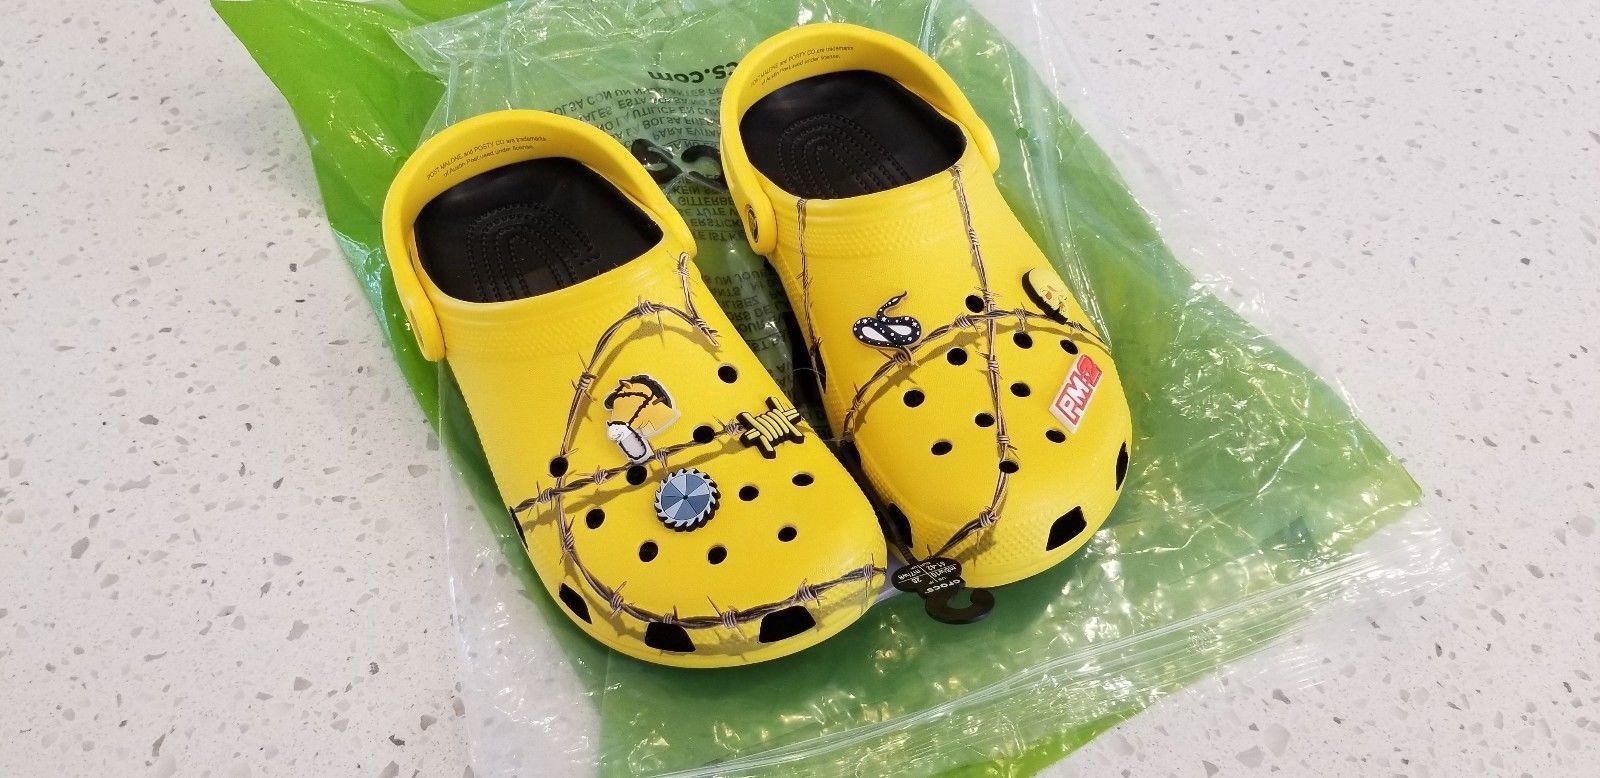 Post Malone Barbed Wire: Post Malone X Crocs Barbed Wire Clog (Limited Edition) *IN